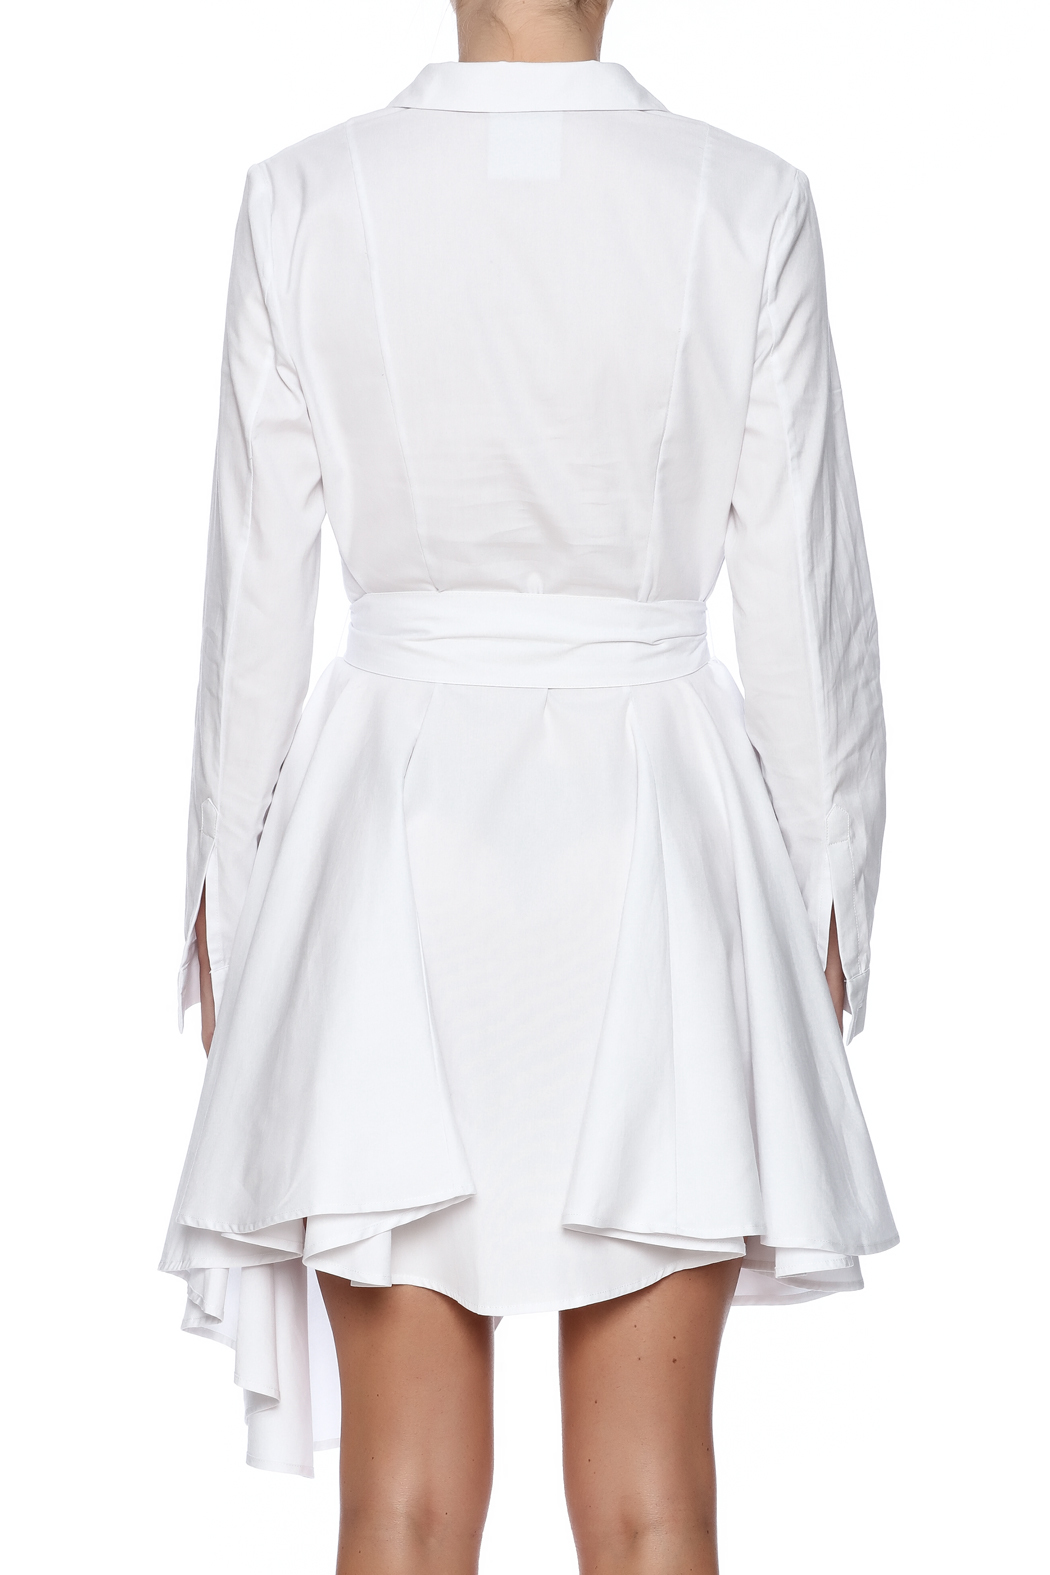 C/MEO COLLECTIVE White Shirt Dress - Back Cropped Image